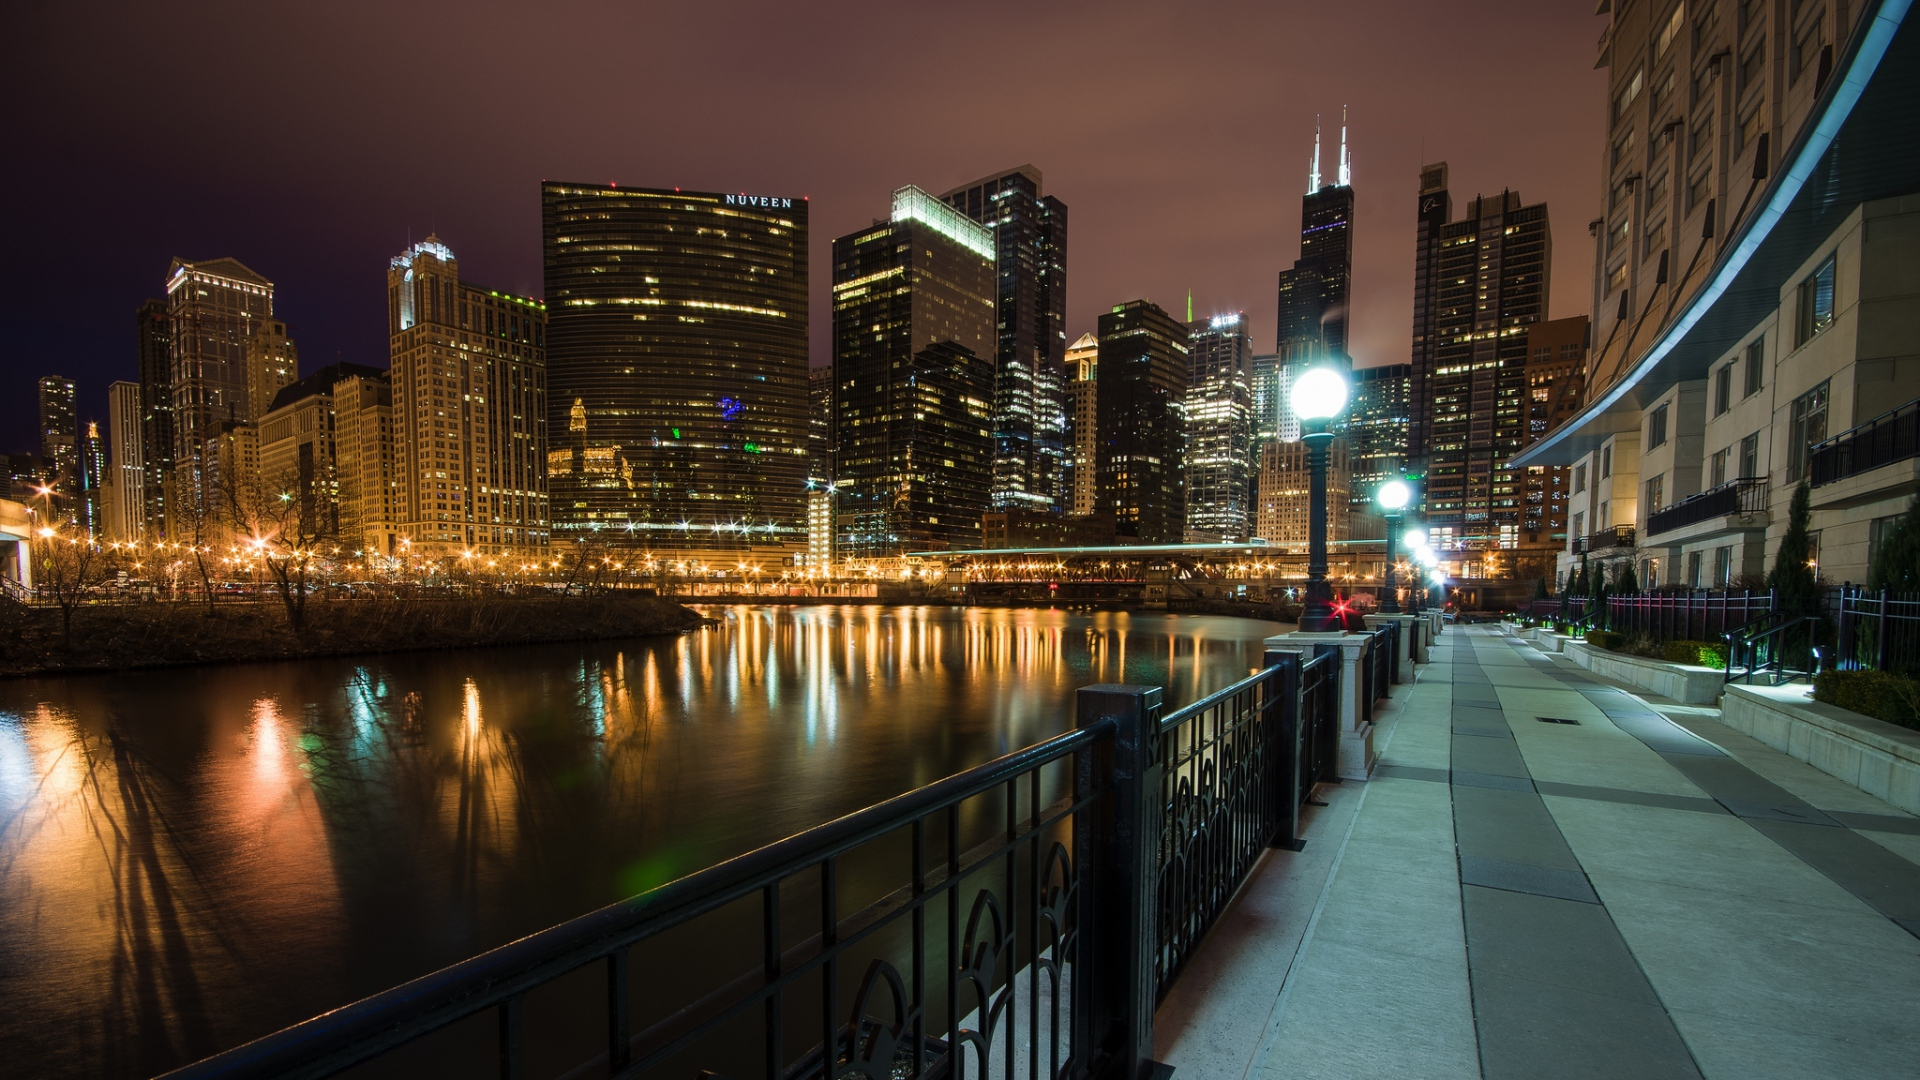 Popular Wallpaper Night Chicago - usa_illinois_chicago_wolf_point_79299_1920x1080  Pic.jpg